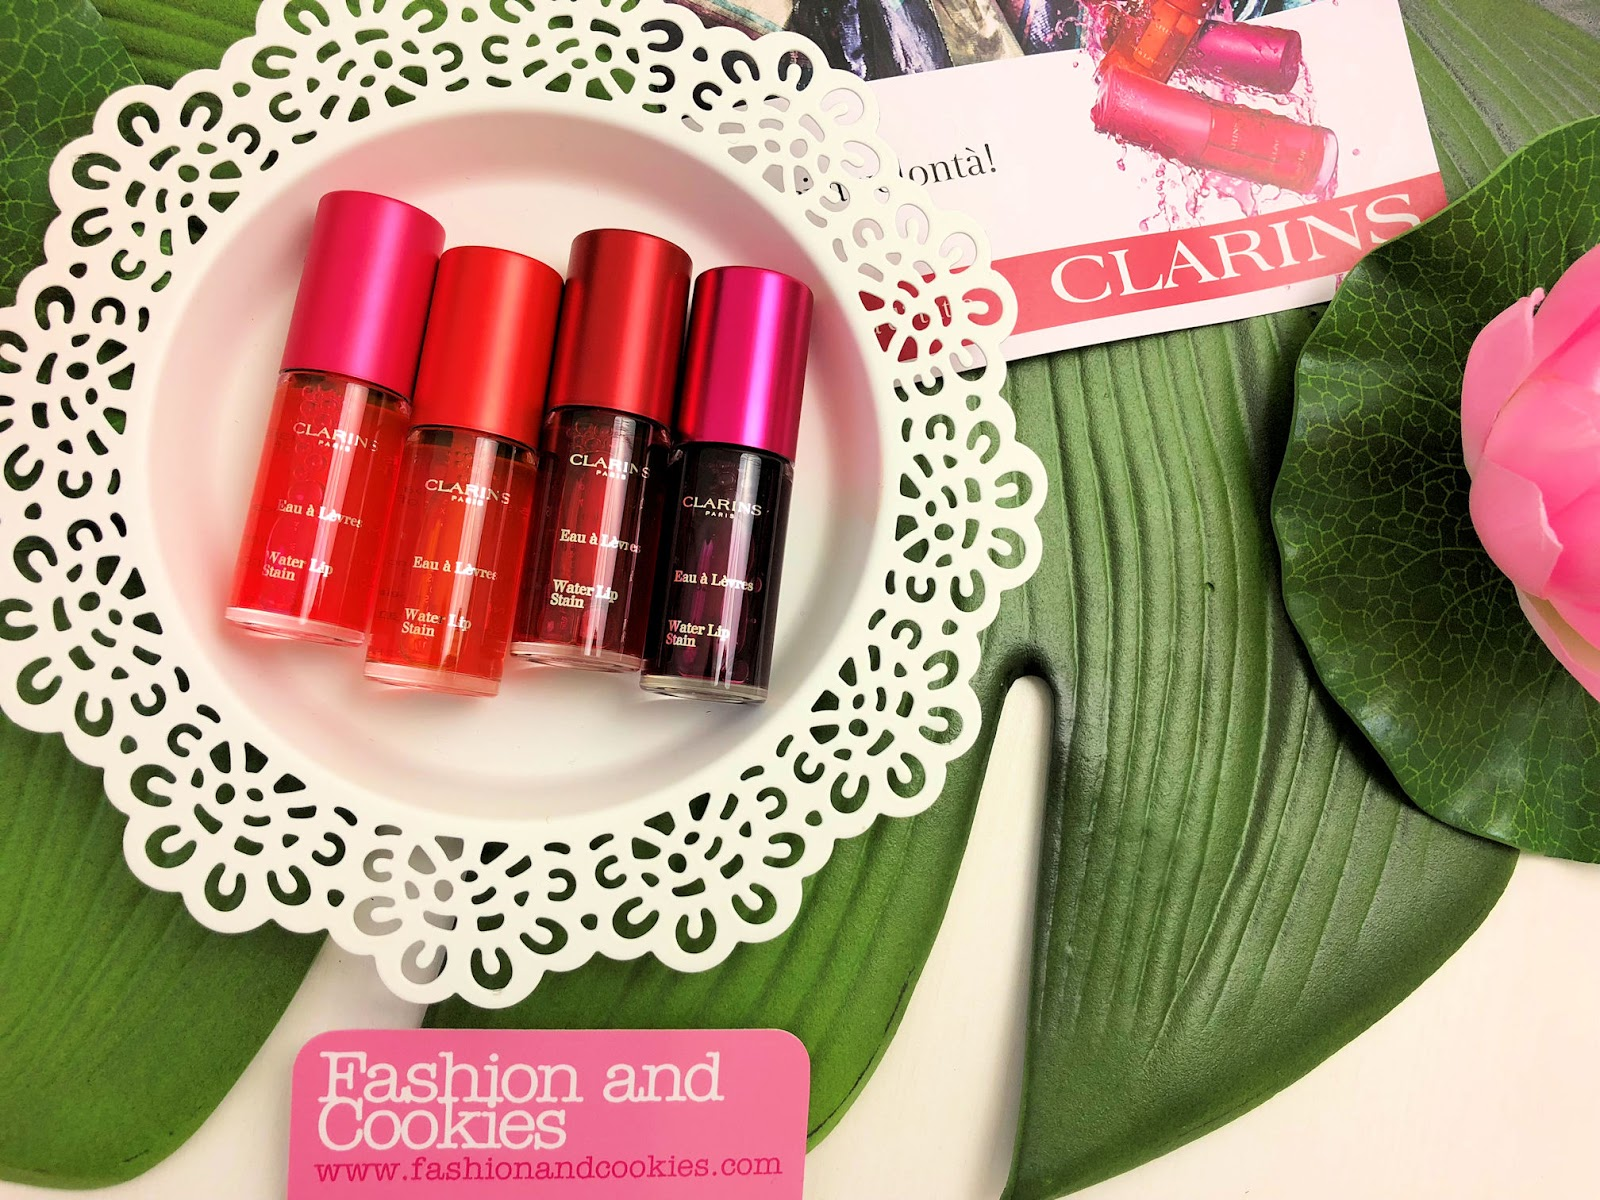 Clarins Water Lip Stain, nuove tinte labbra mat leggere e durature su Fashion and Cookies beauty blog, beauty blogger